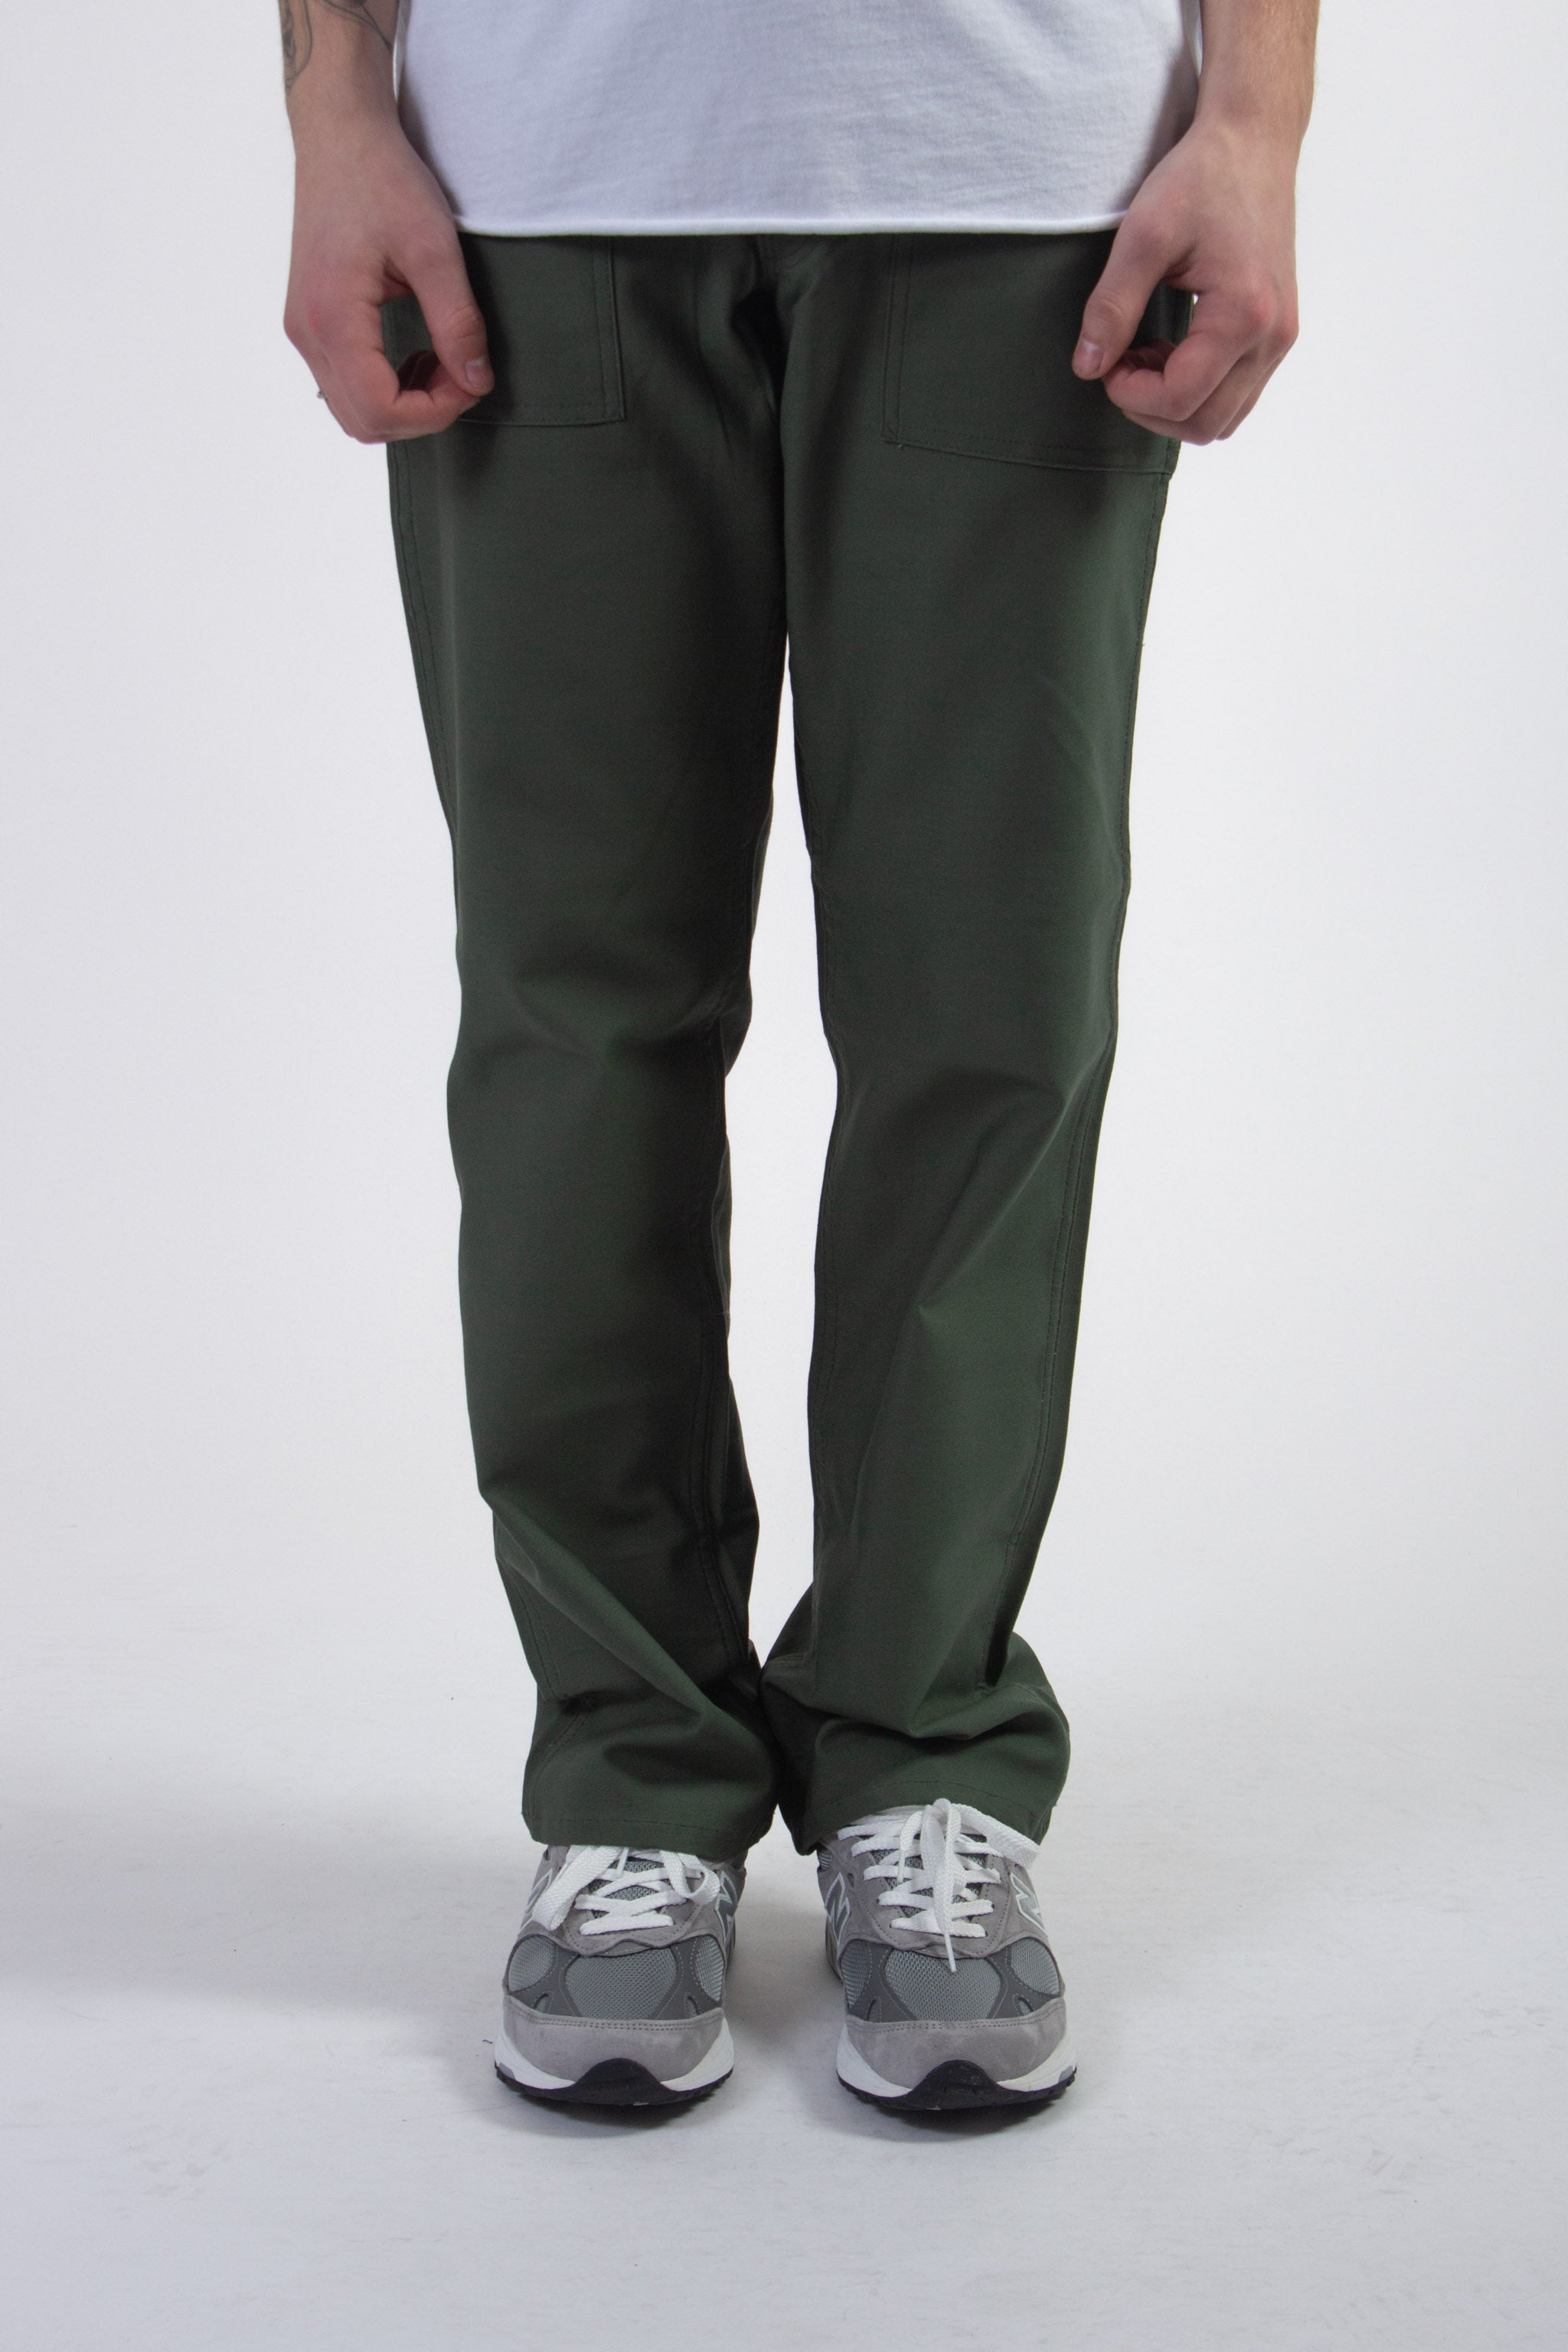 Loose Fit Fatigue Pant Olive 1100